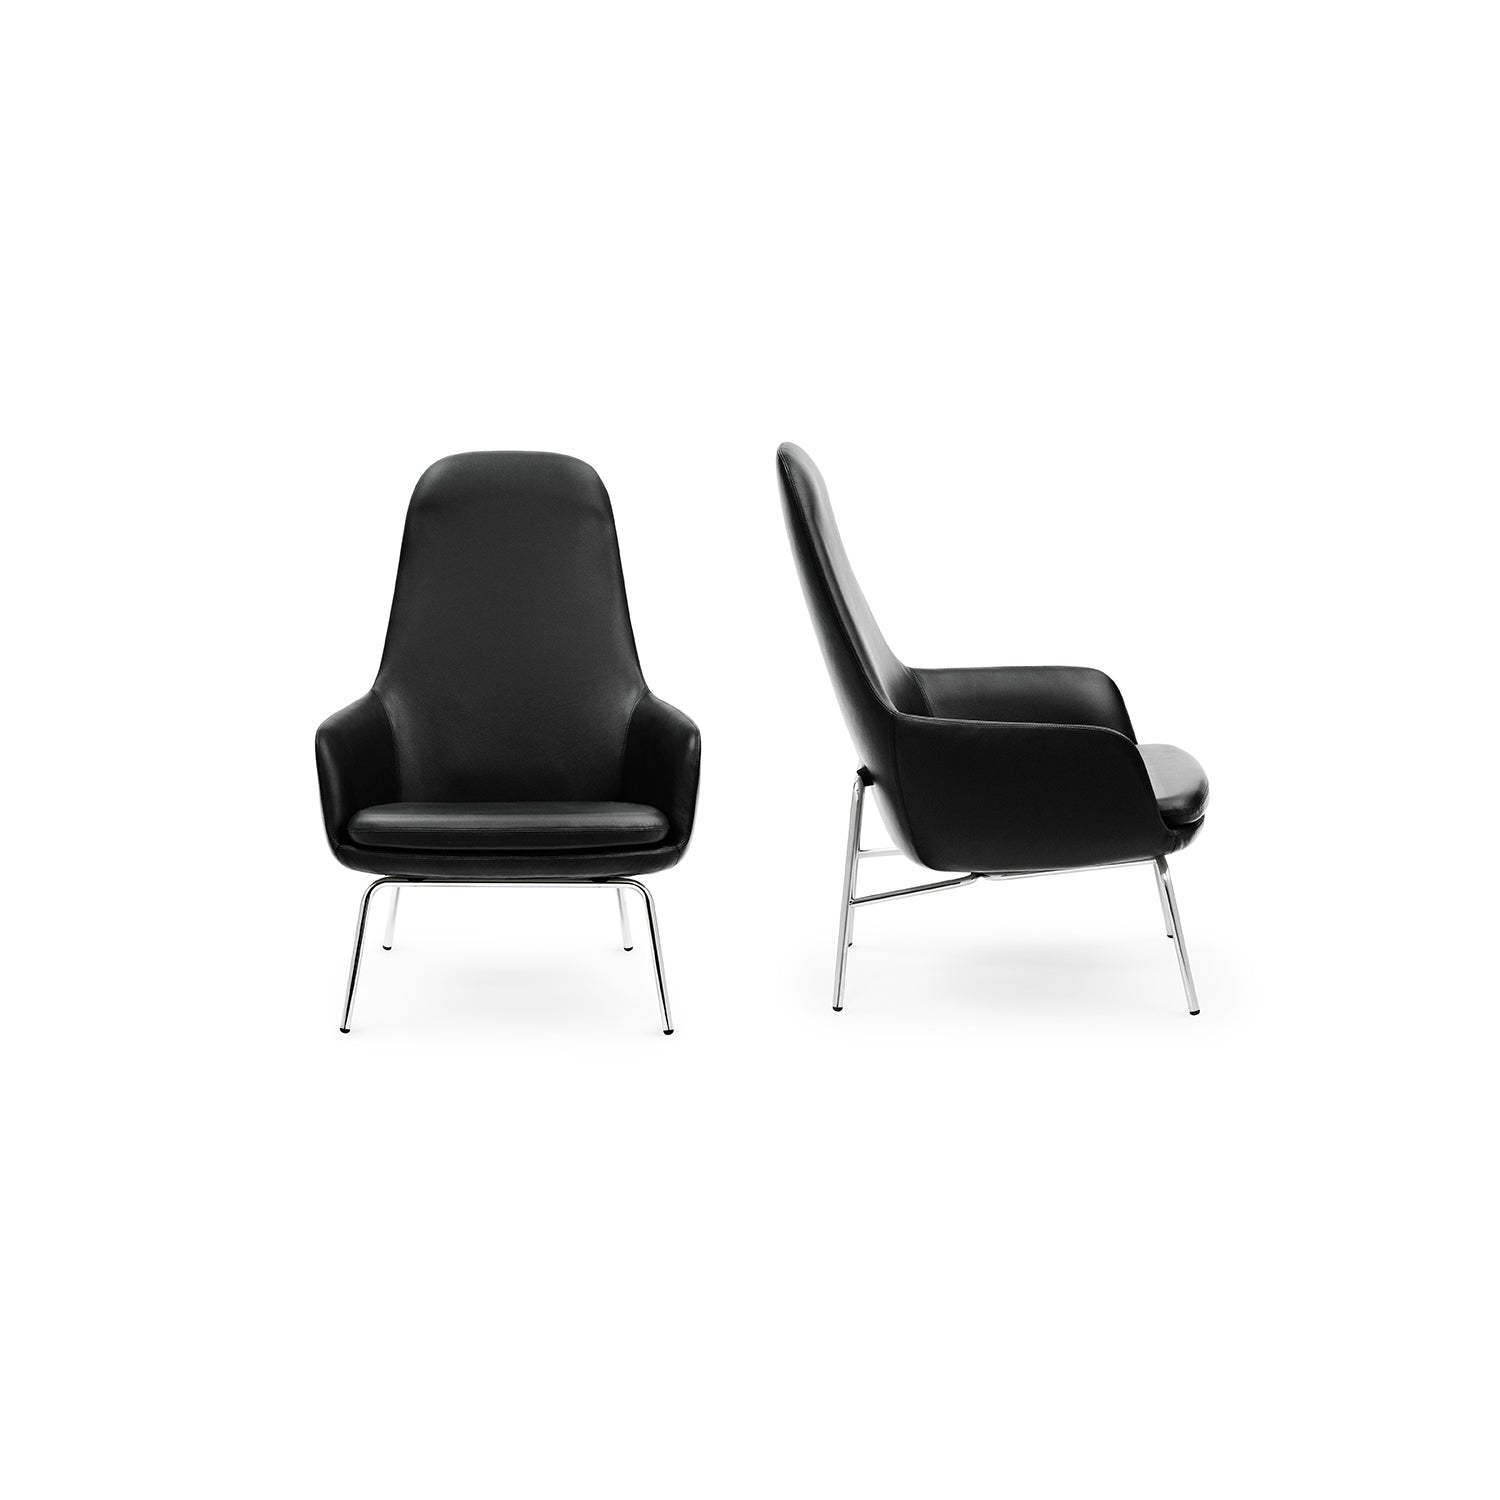 Era Lounge Chair: High + Steel or Chrome Base